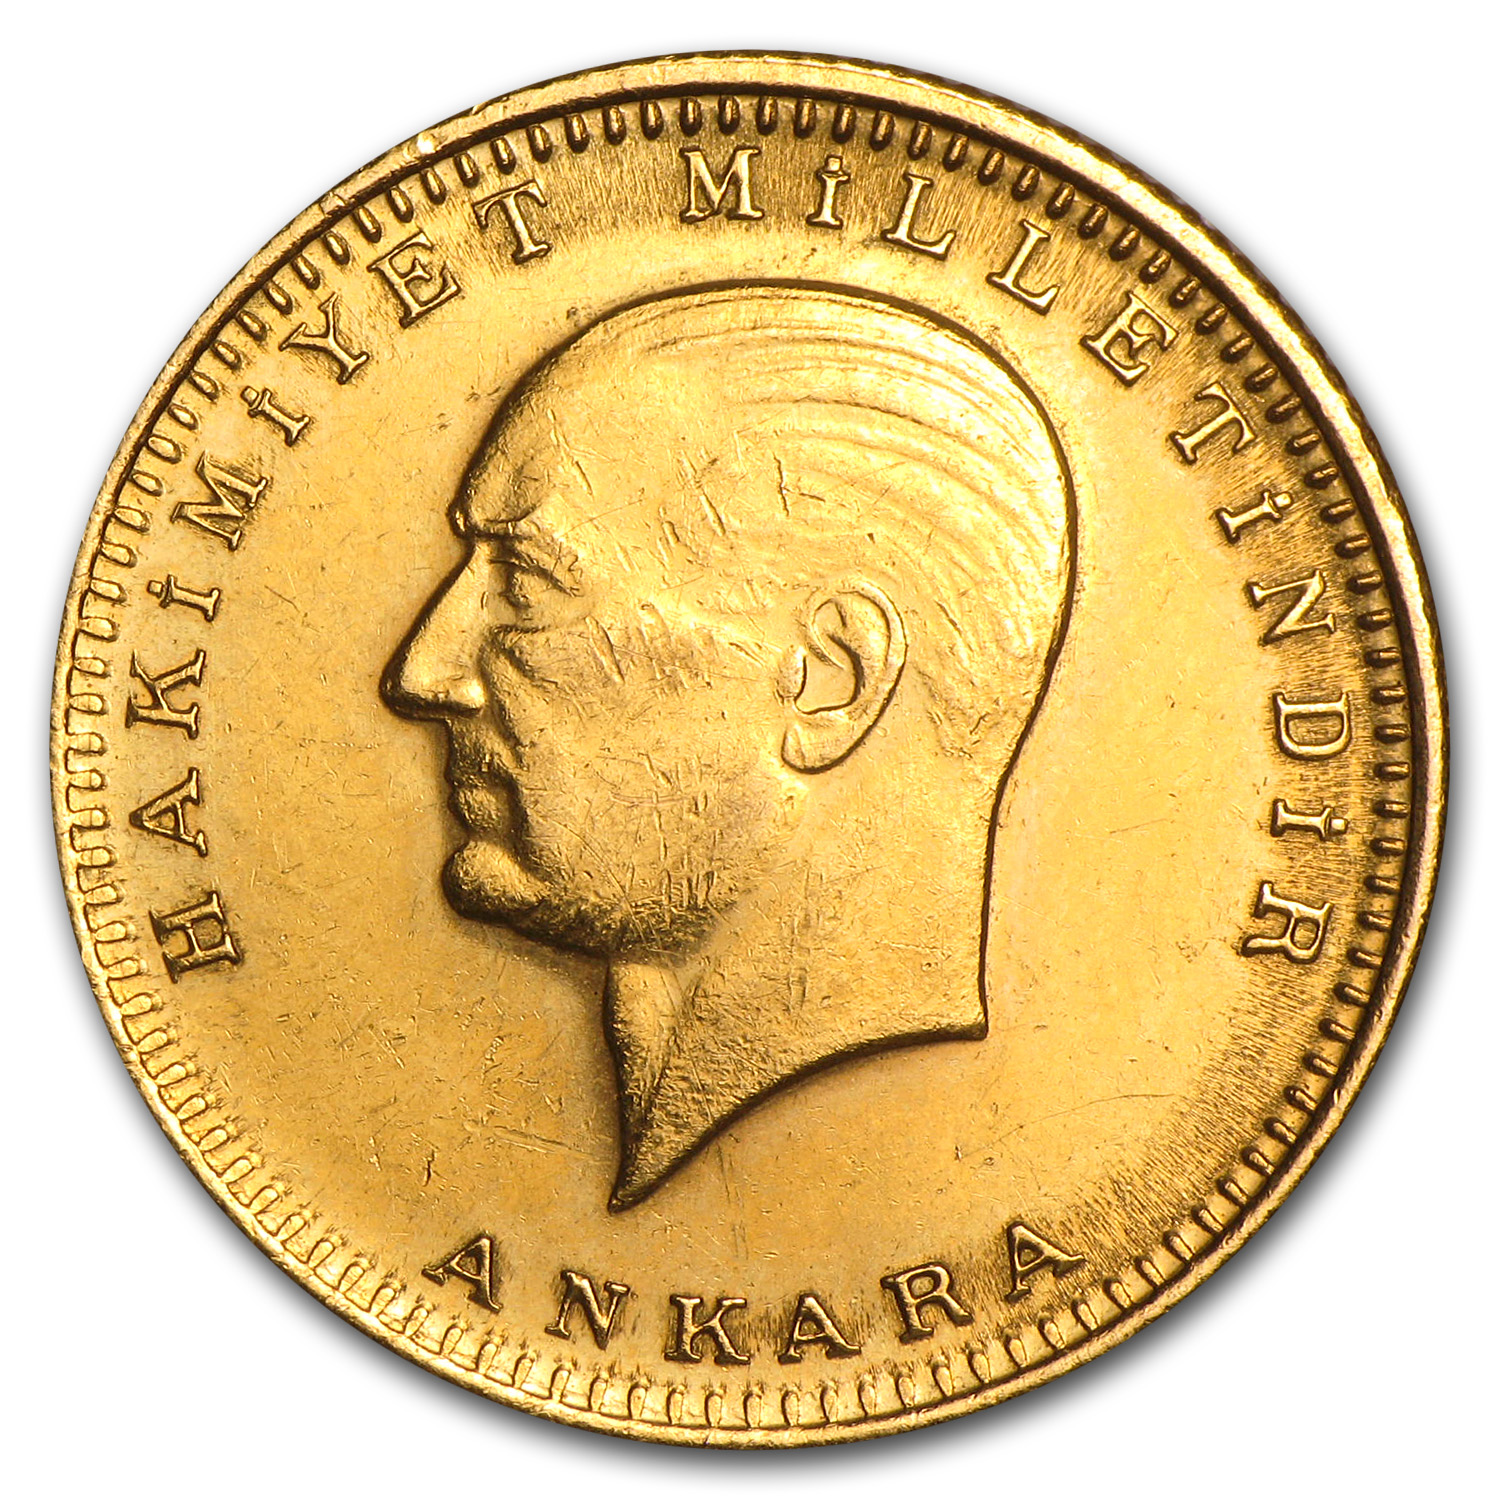 Turkey 1923/XX Gold 100 Kurush Coin (Average Circulated)